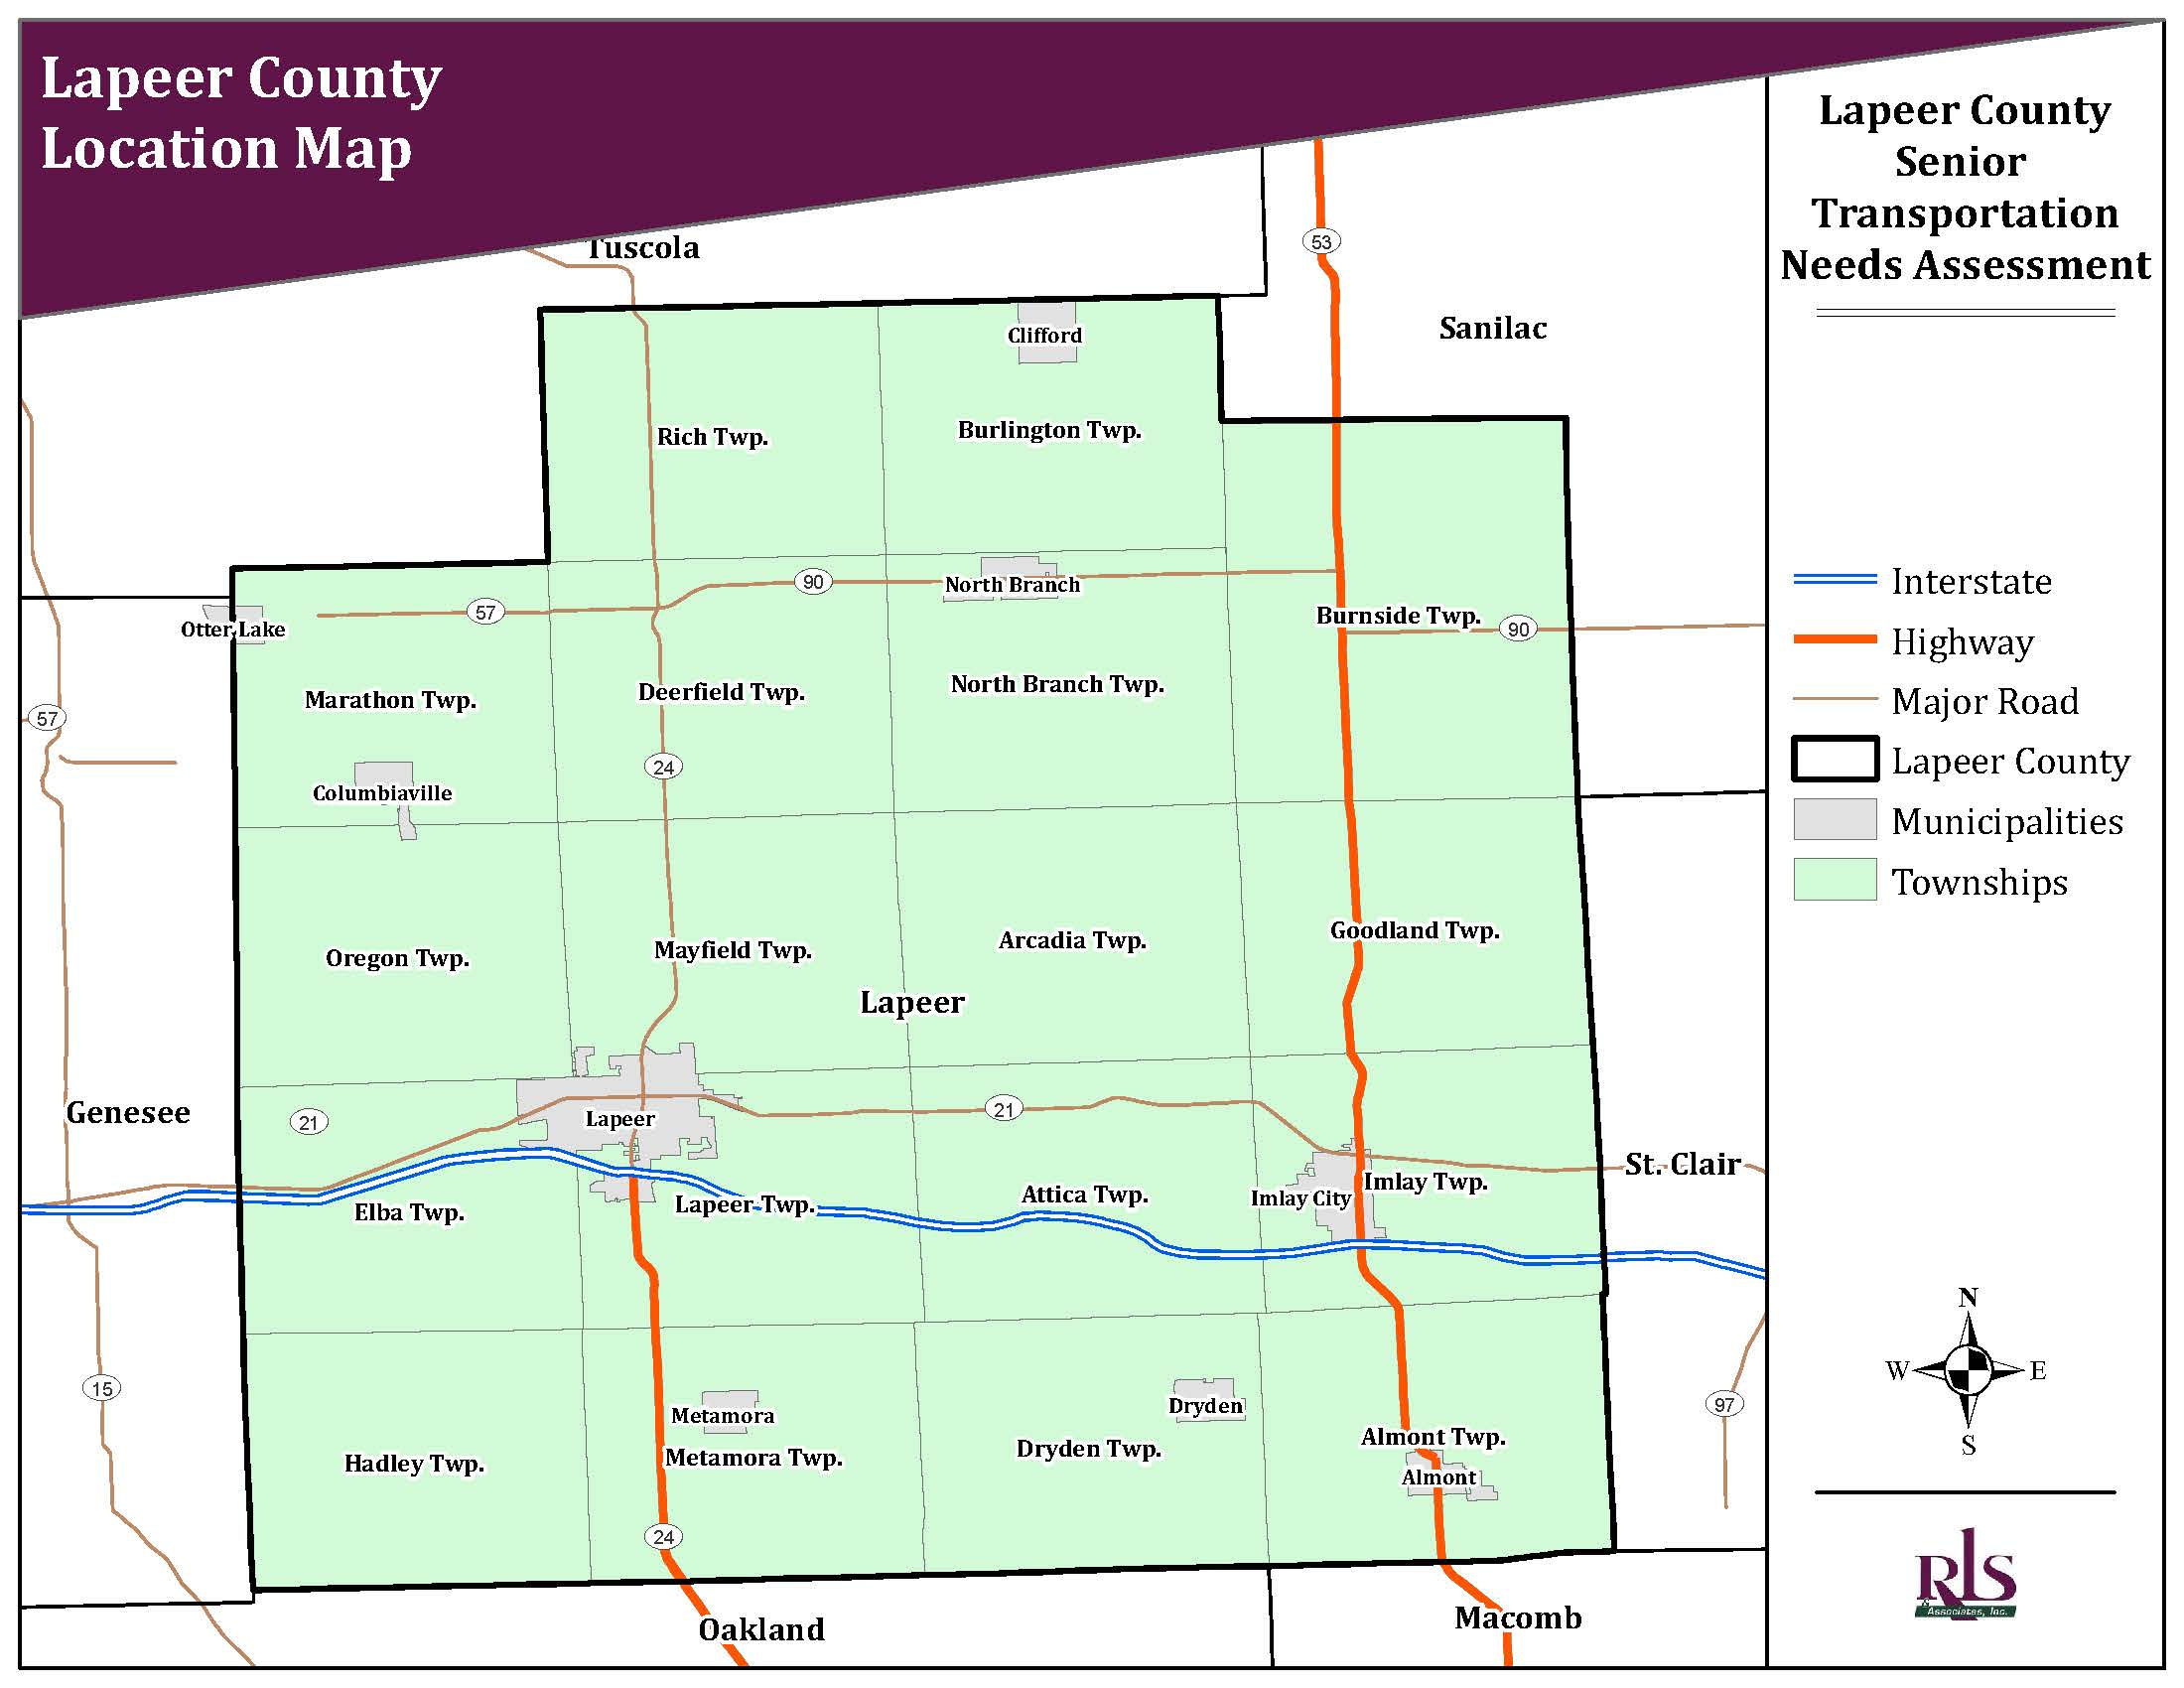 Location Map showing Lapeer County, Cities, and Townships within the county